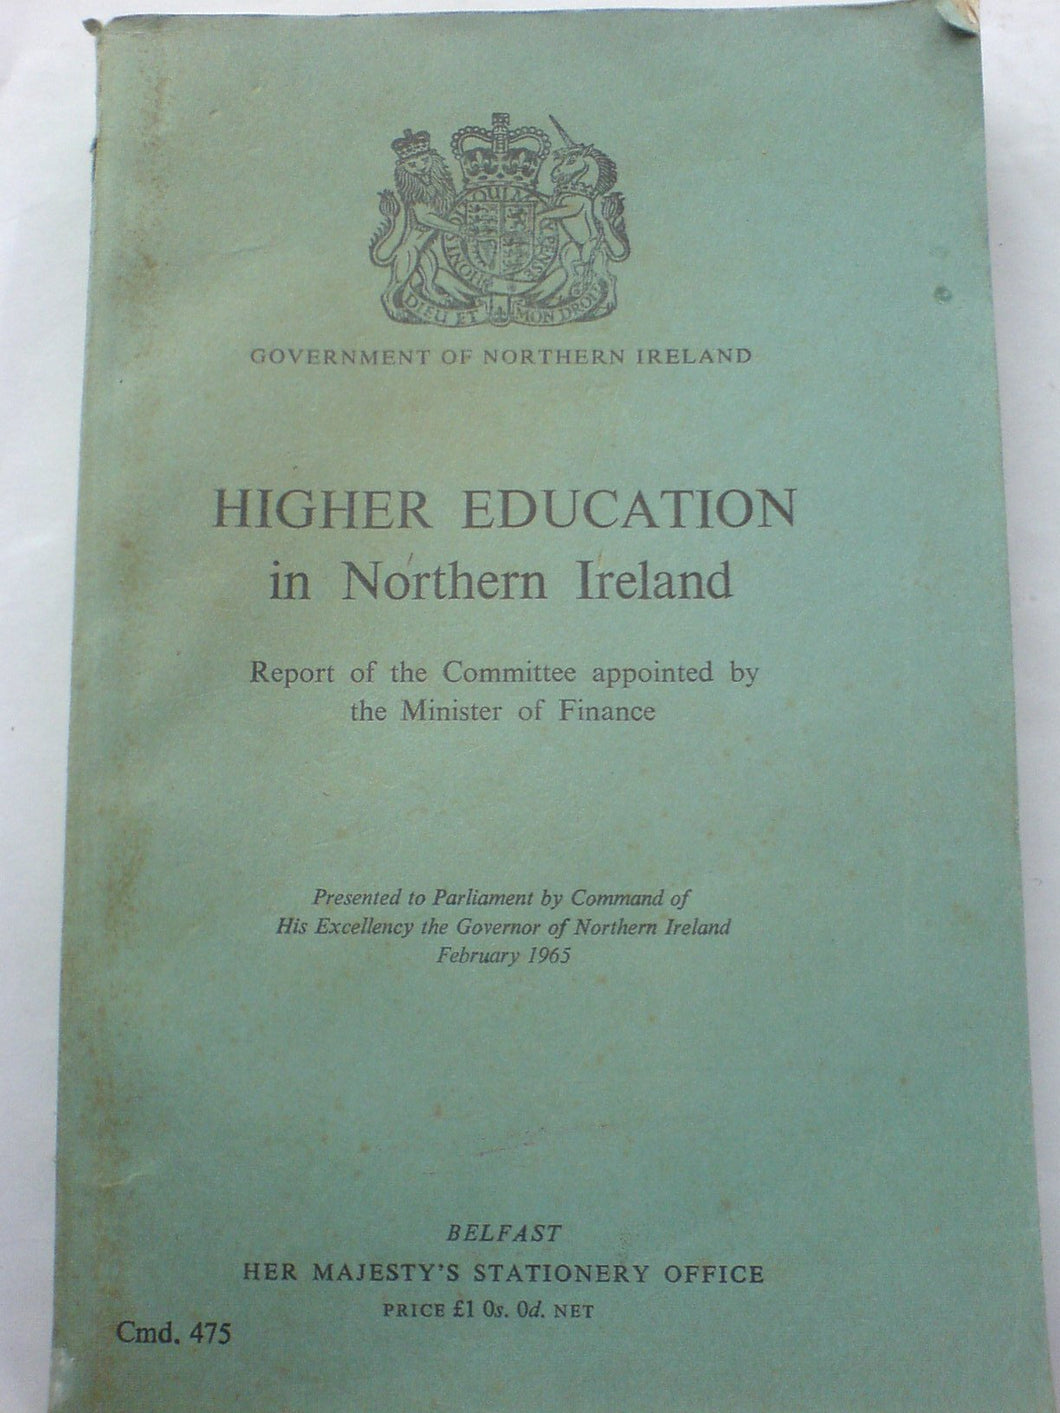 Higher Education in Northern Ireland Report of the Committee Appointed by the Minister of Finance Presented to Parliament By Command of His Excellency the Governor of Northern Ireland February 1965